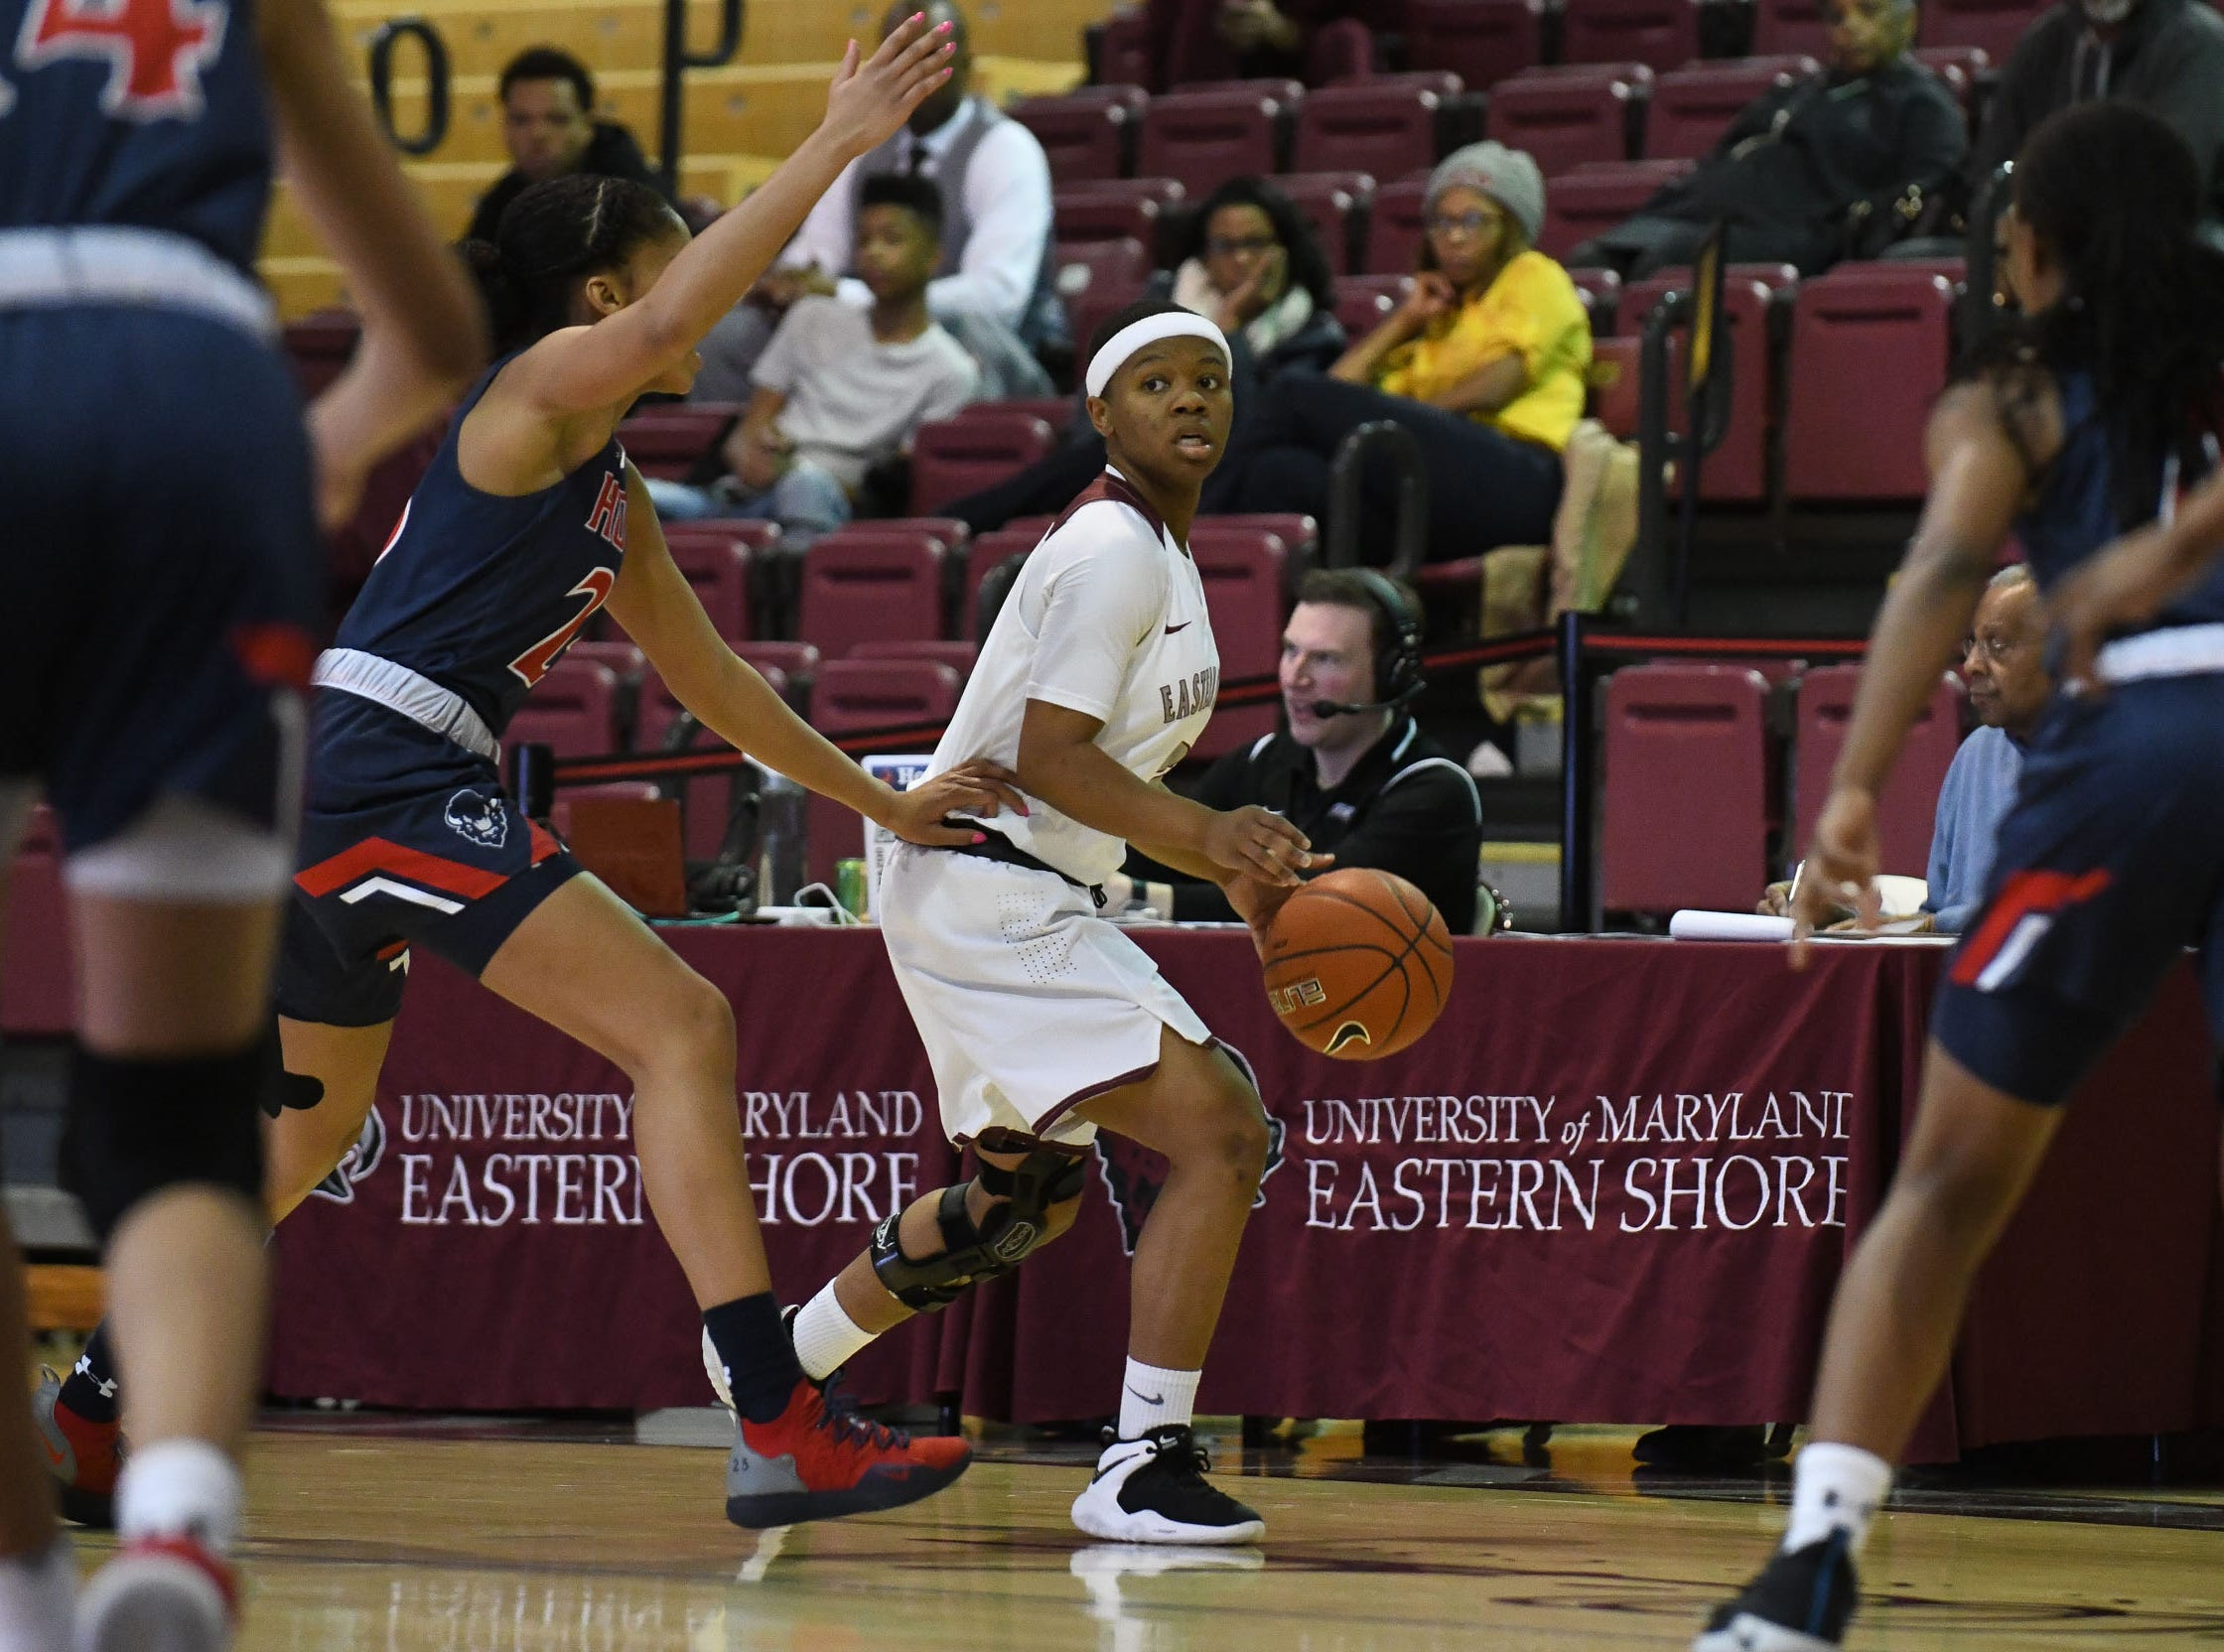 Maryland Eastern Shore's Ciani Byron with the ball during the game against Howard University on Monday, Jan 7, 2018.